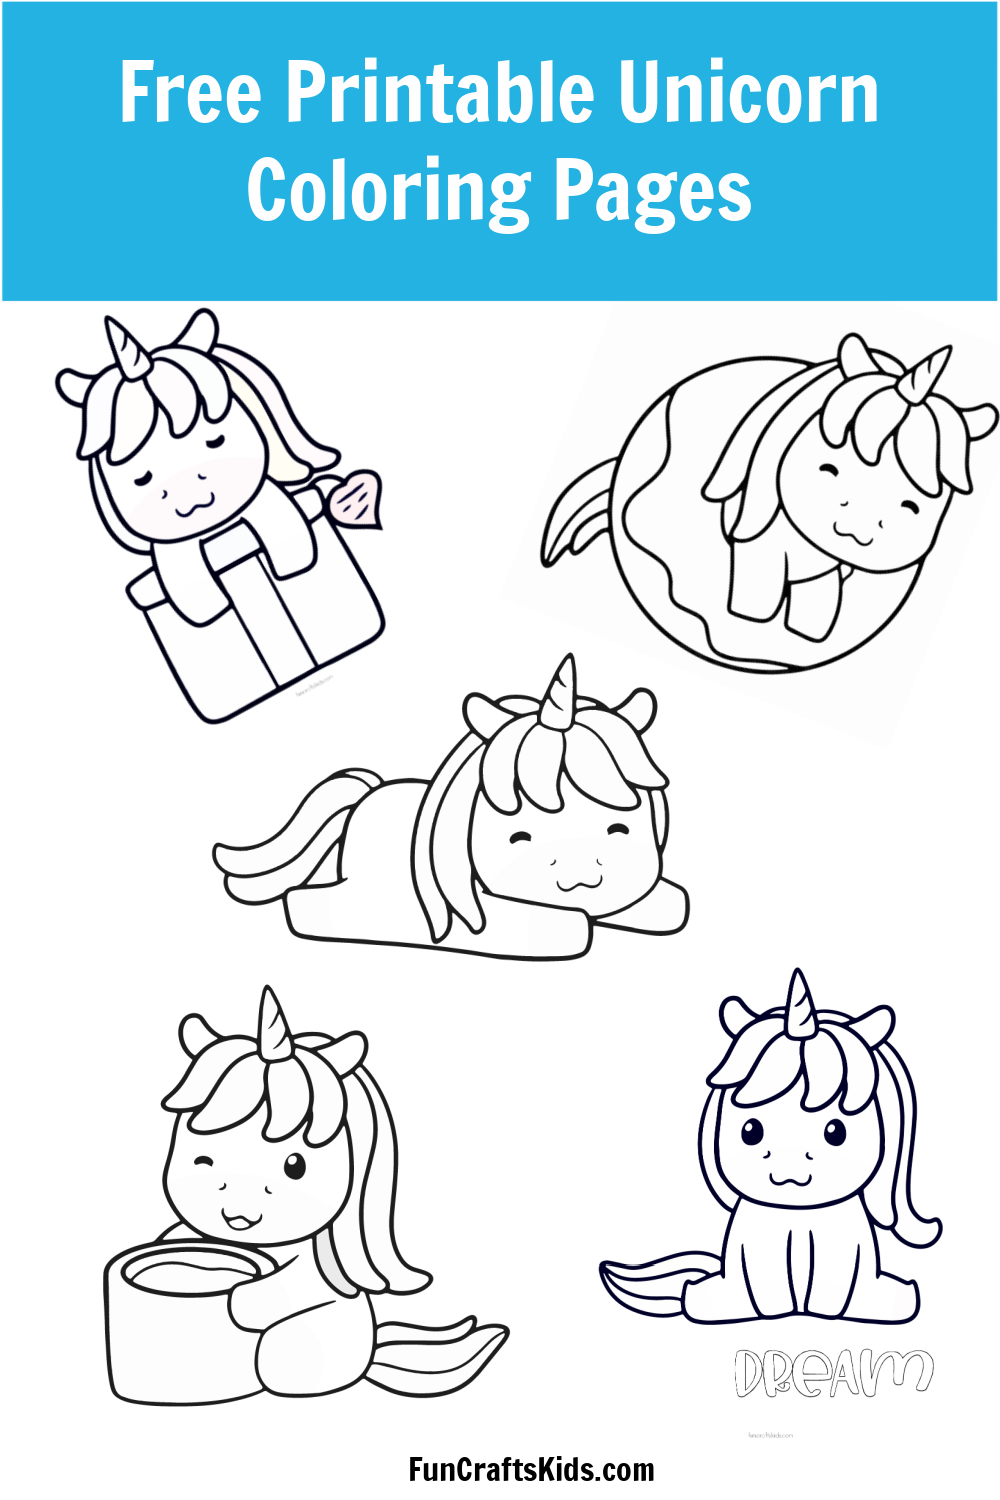 Free Printable Unicorn Coloring Pages   Fun Crafts Kids